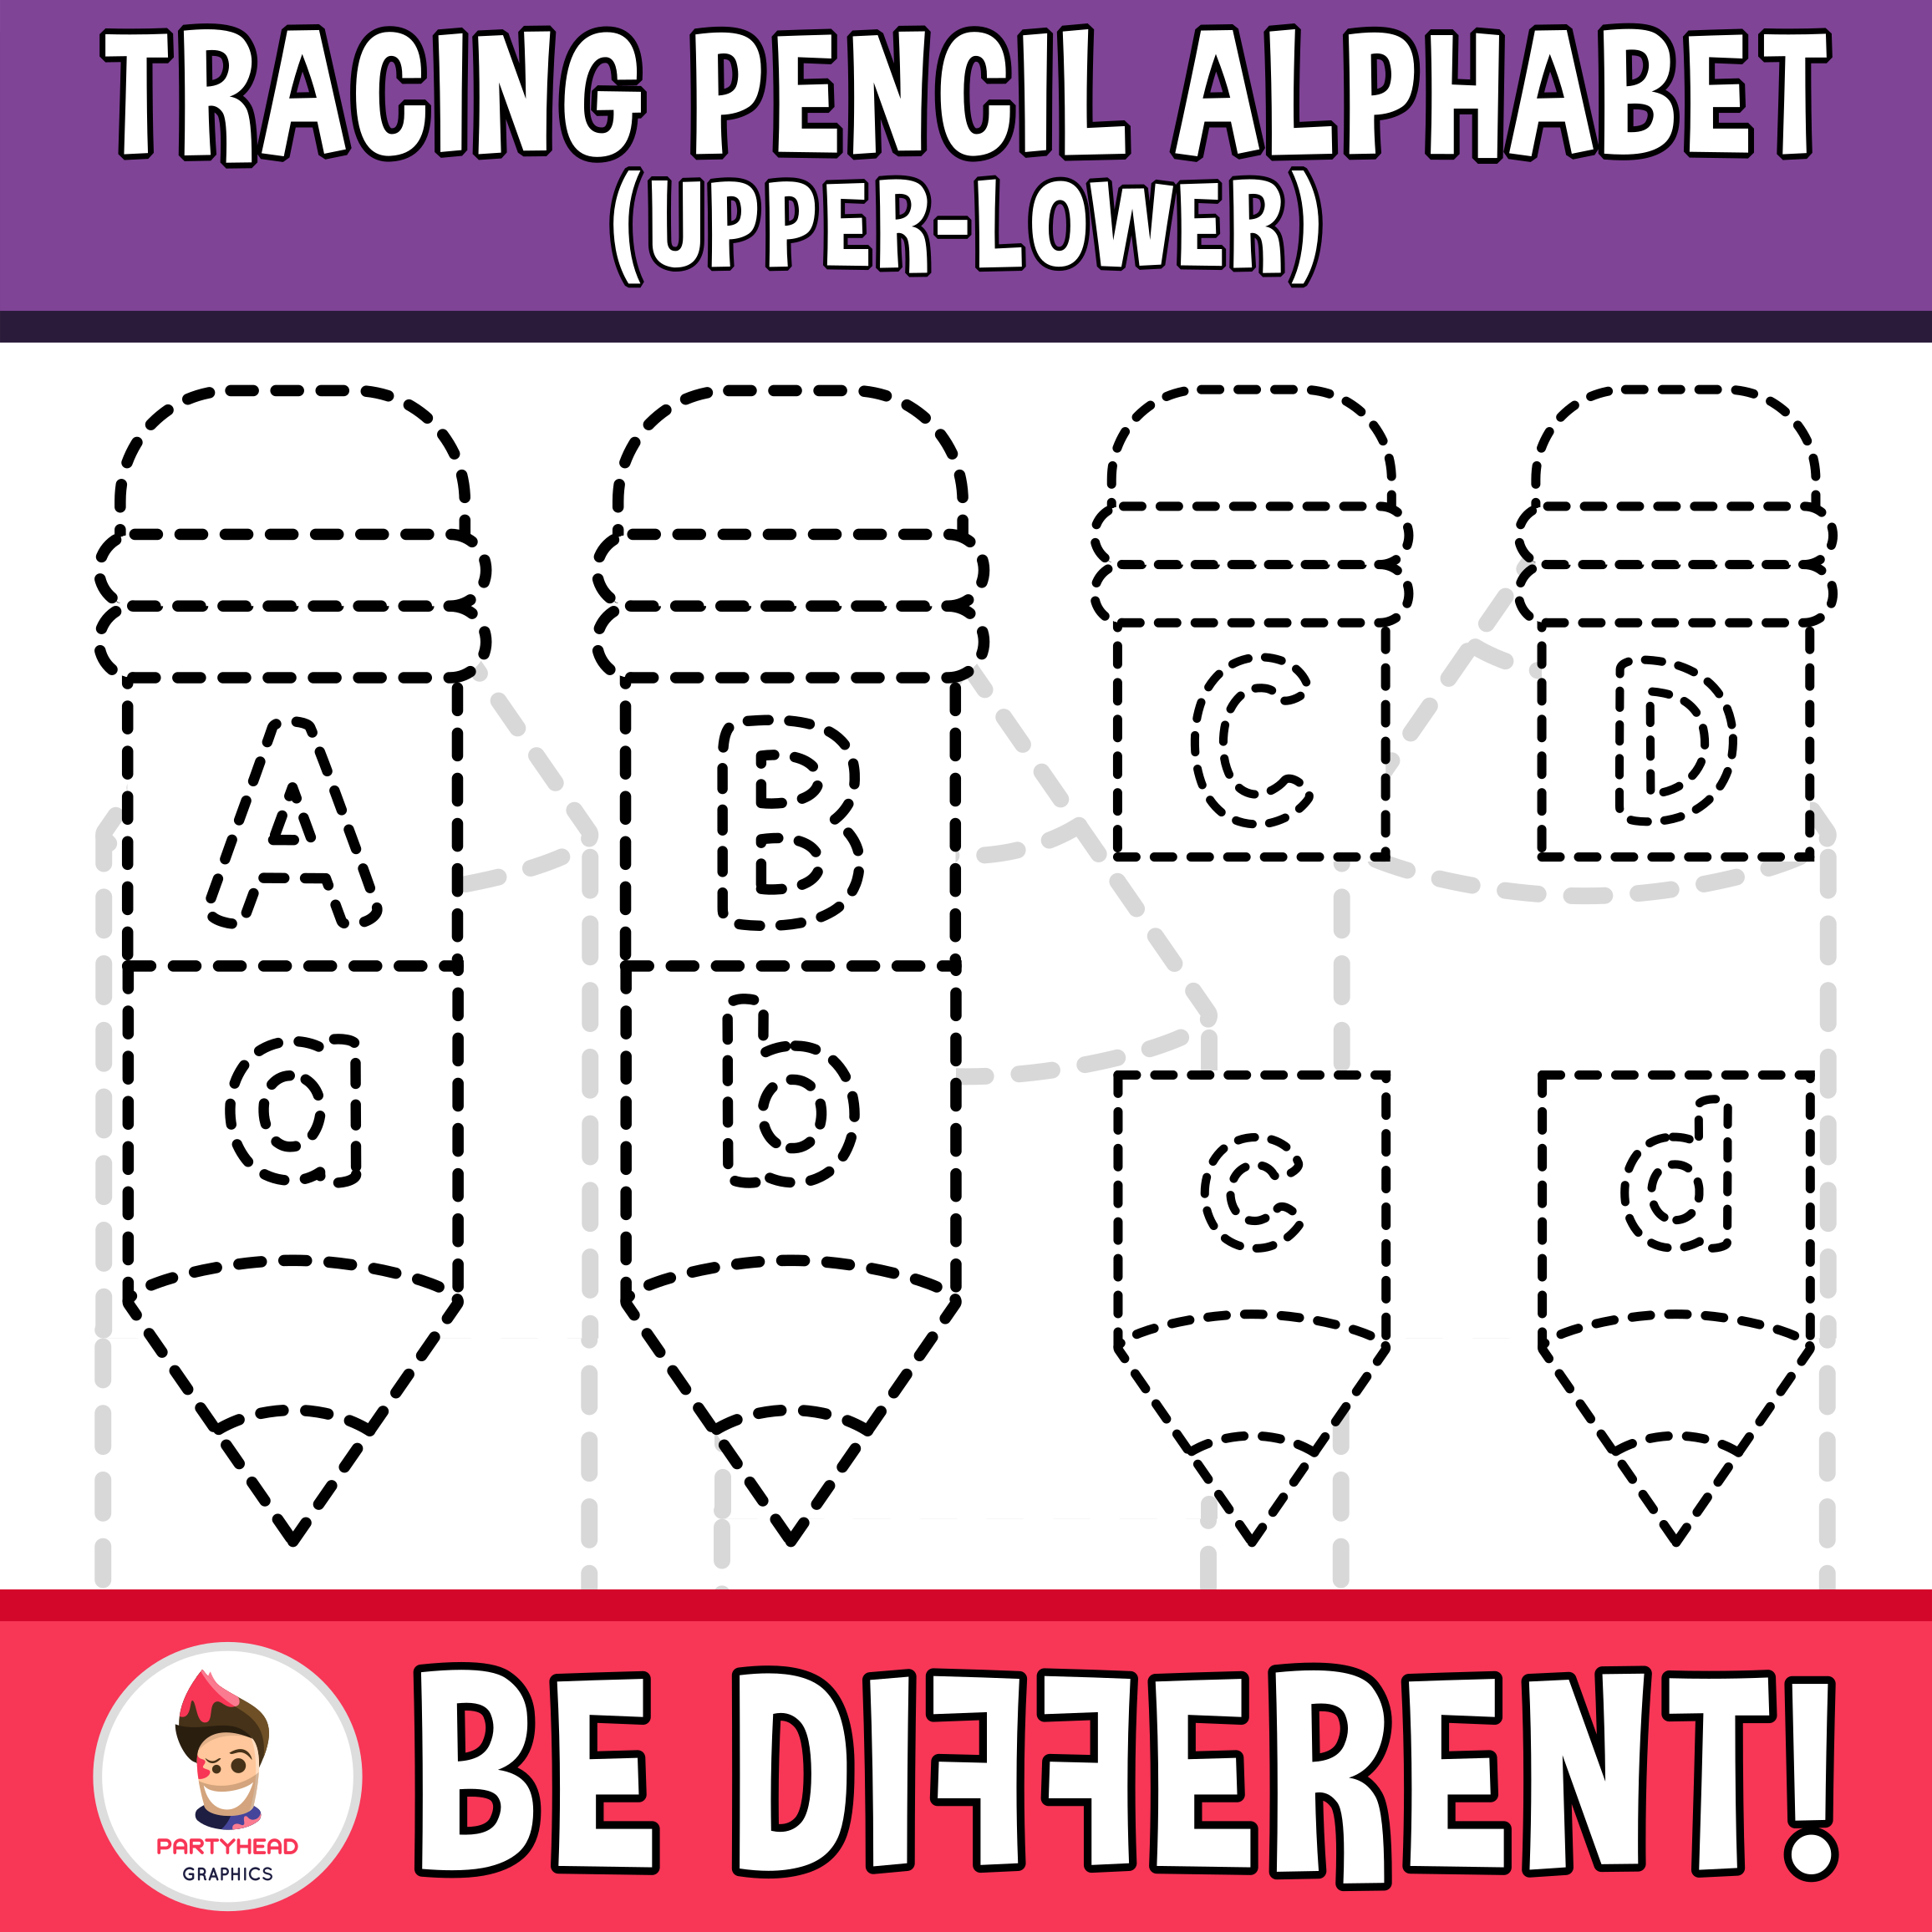 Tracing Pencil Alphabet Upper Lower Clipart Motor Skills Pencil Control Back To Clip Art Lower Case Letters Tracing